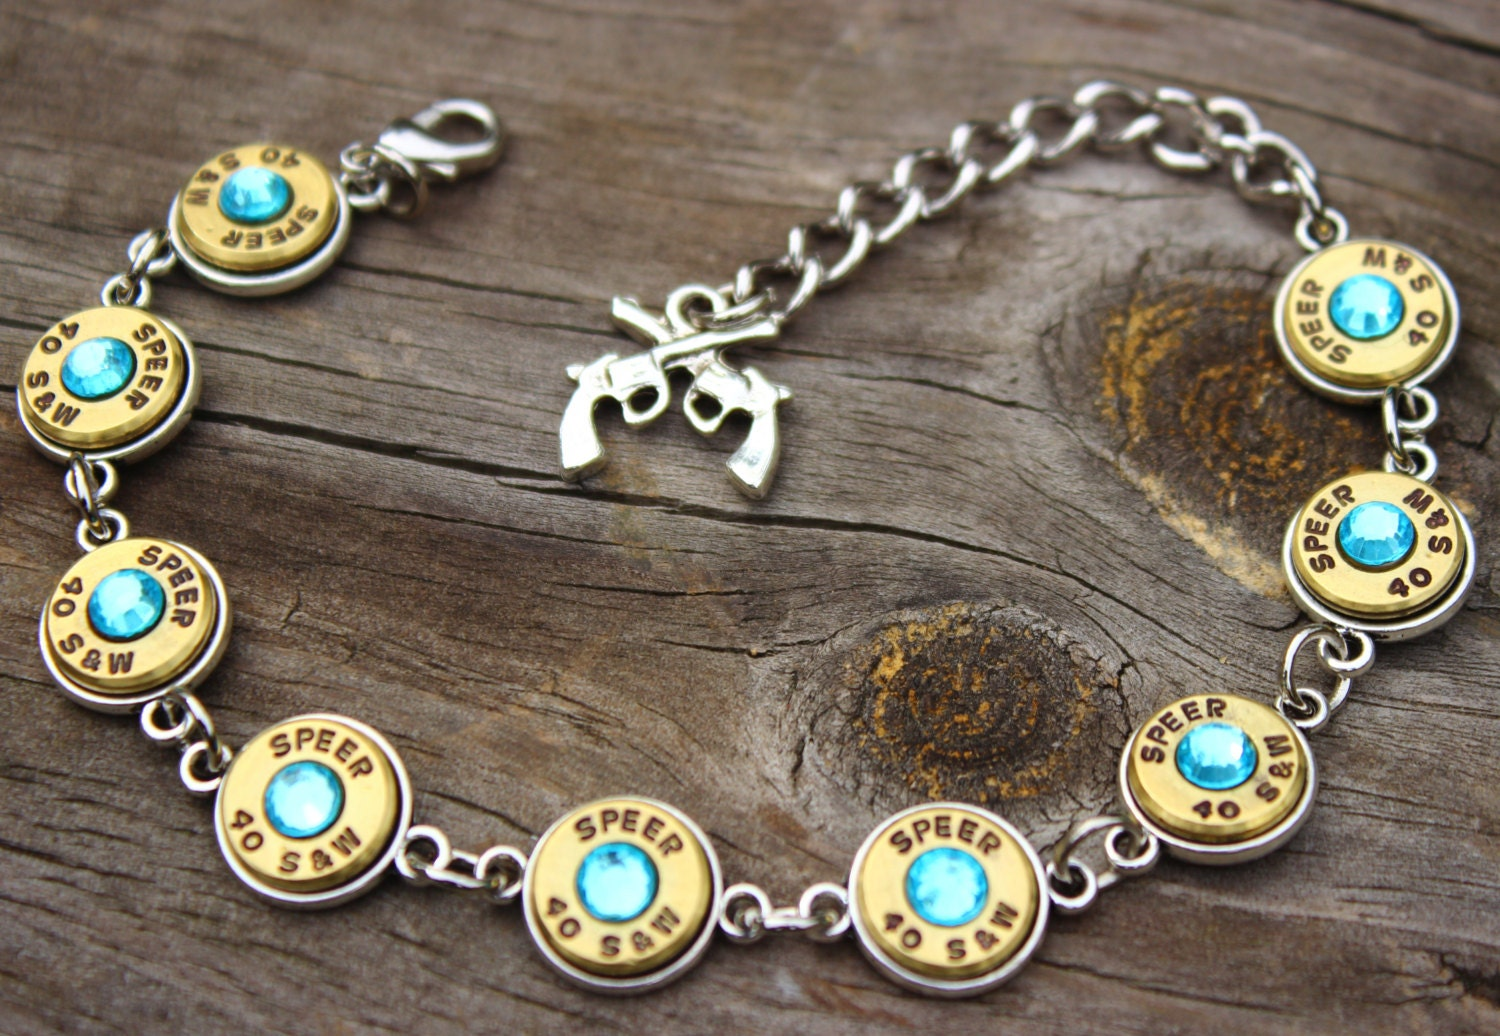 Speer Bullet Bracelet  40 Caliber Spent Shell Casings  Aquamarine  Crystals  Ammo Bracelet